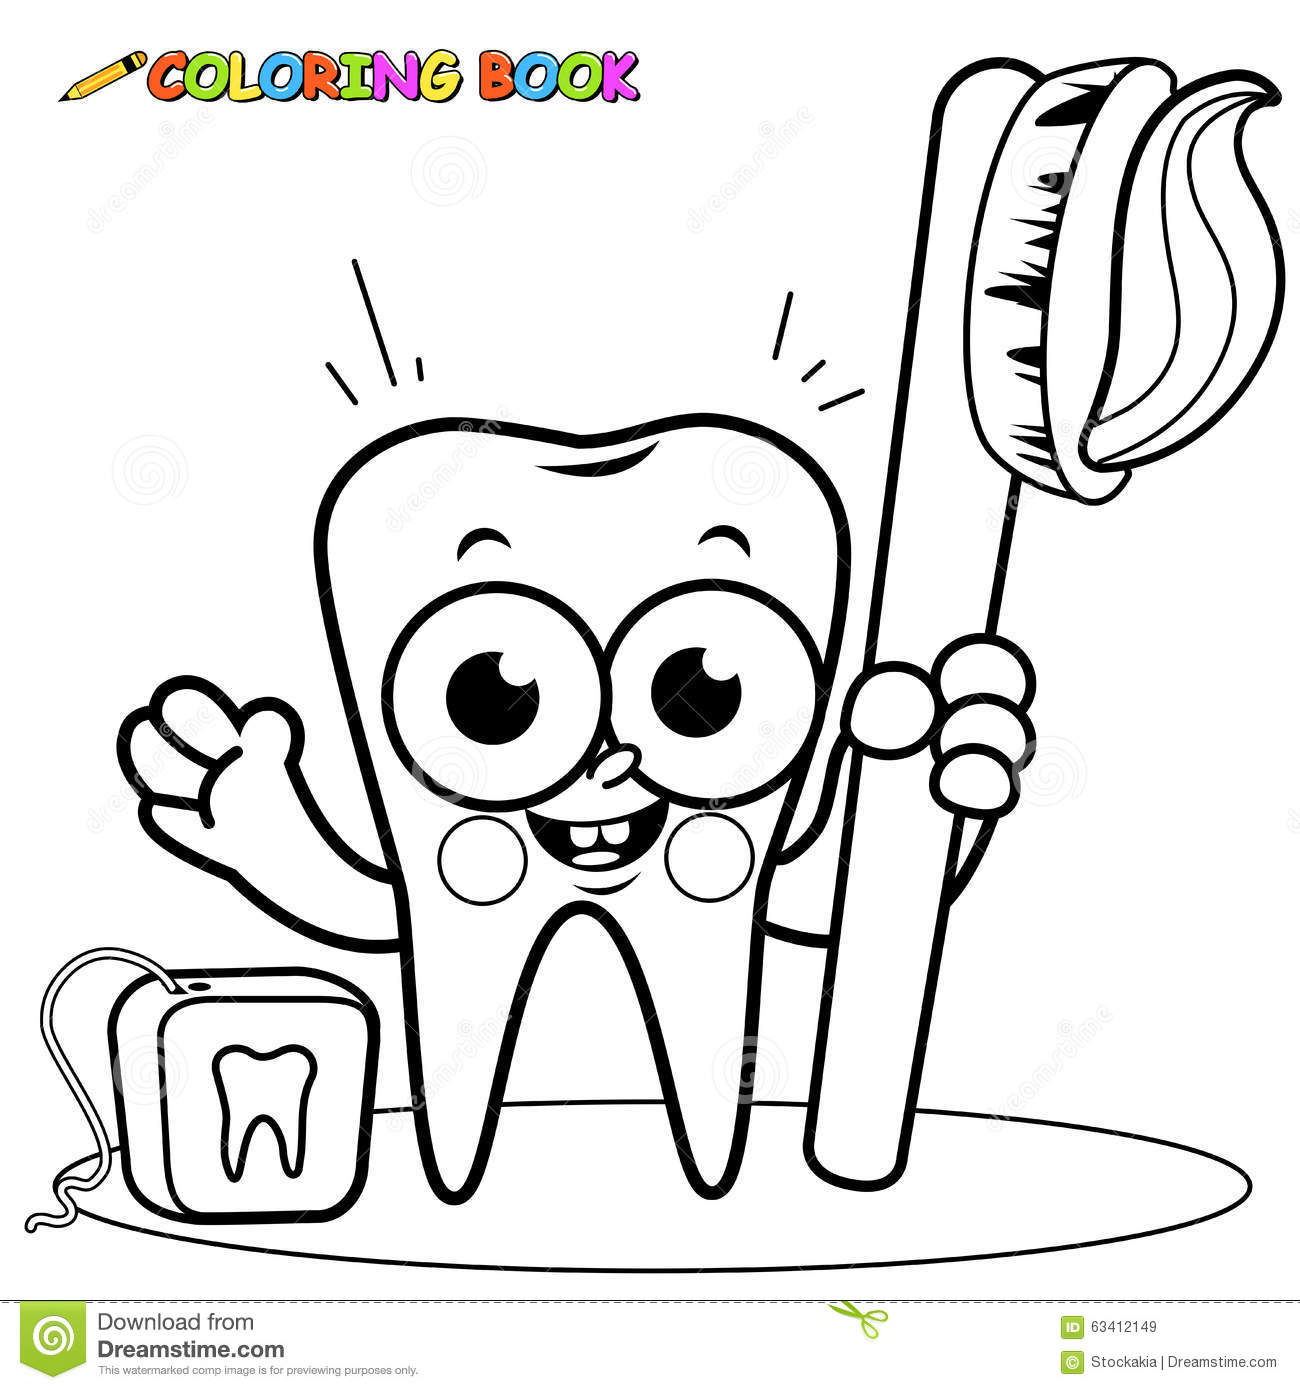 Coloring Page Tooth Cartoon Holding Toothbrush And Dental Floss